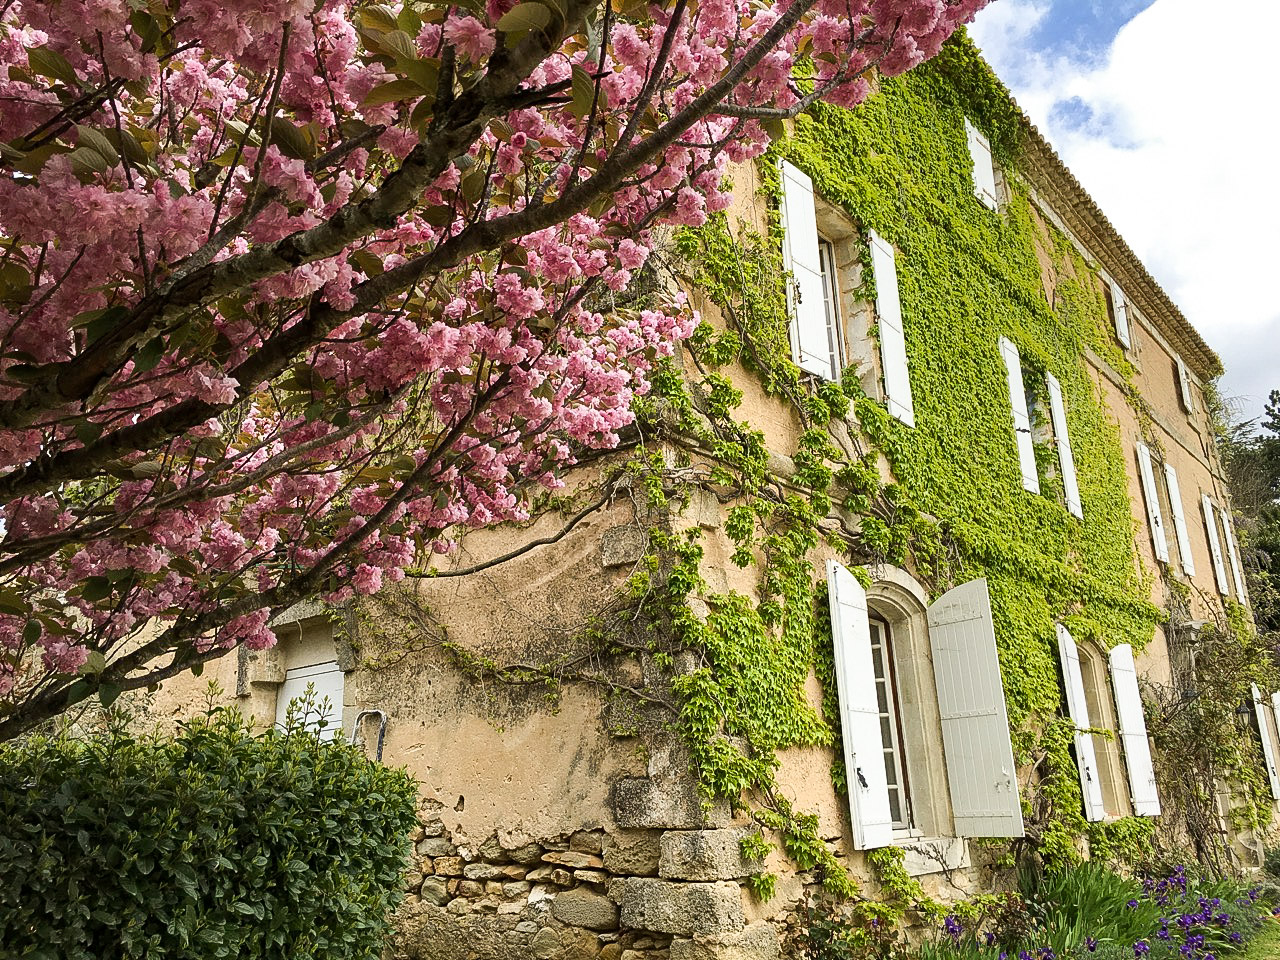 Uzès region, elegant 19th country house, 335m2 living space on half an acre of gardens